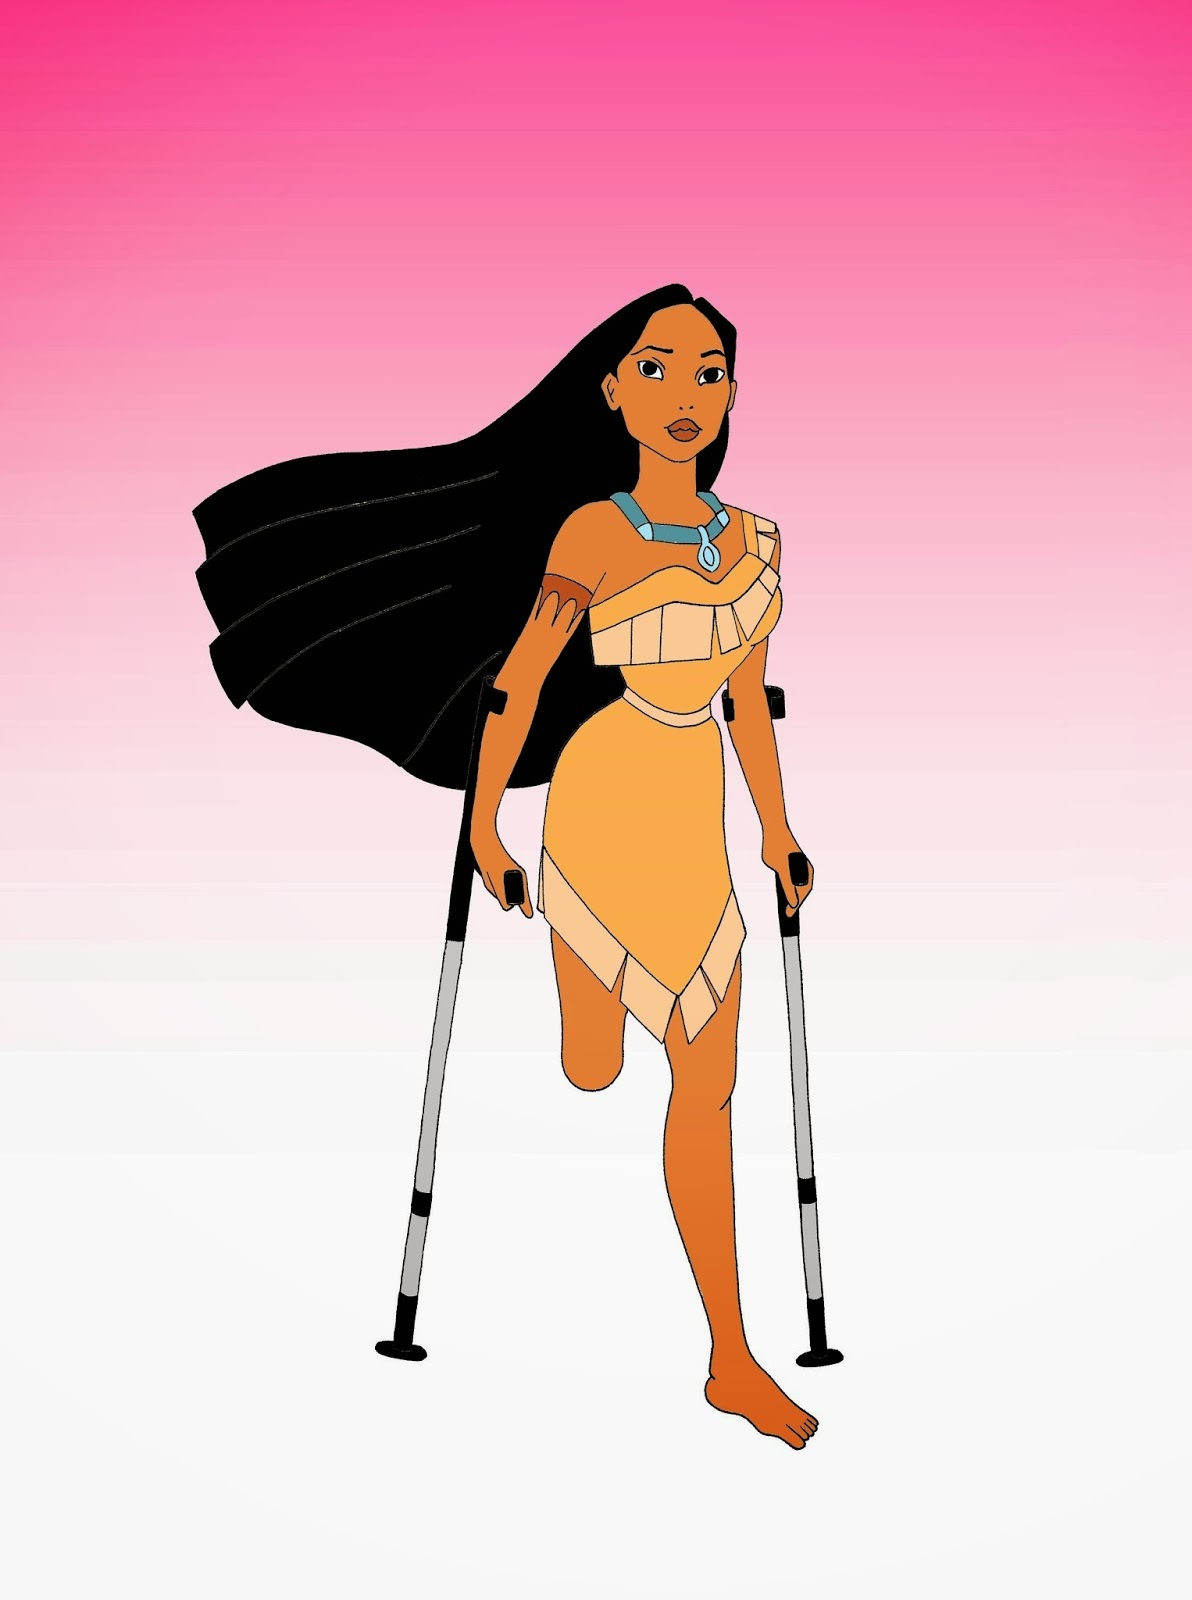 Disabled Disney princess Pocahontas Disabled Disability Equal Rights Wellchair Health Art Campaign ADV Cartoon Painting Portrait Illustration Sketch Humor Chic by aleXsandro Palombo